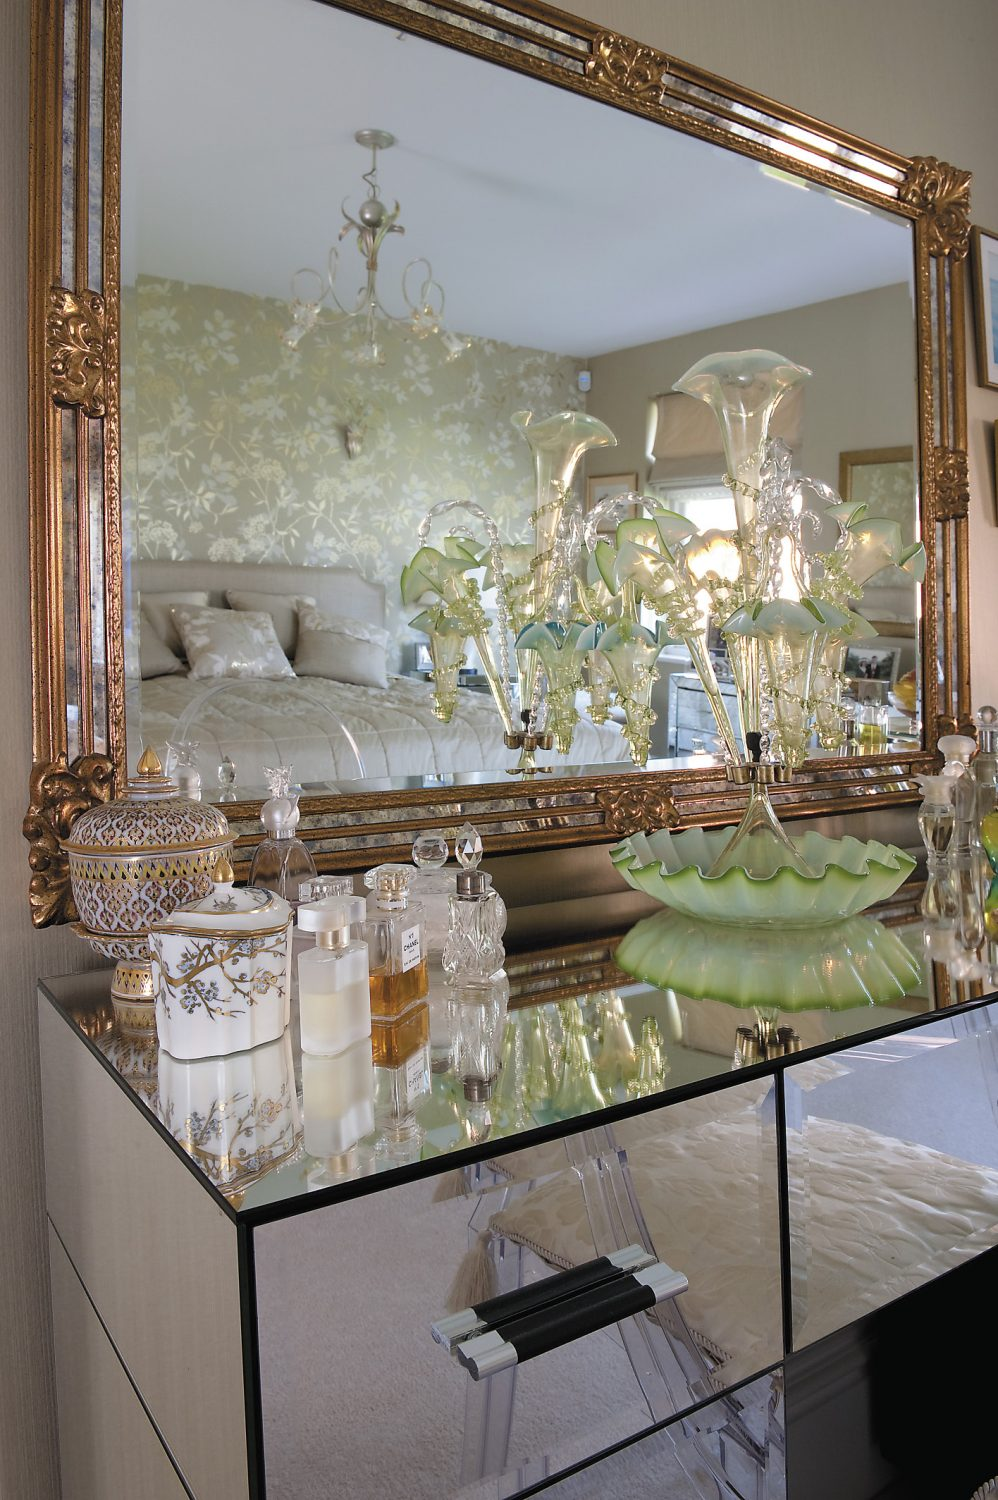 Glass perfume bottles are grouped either side of a glass Victorian epergne